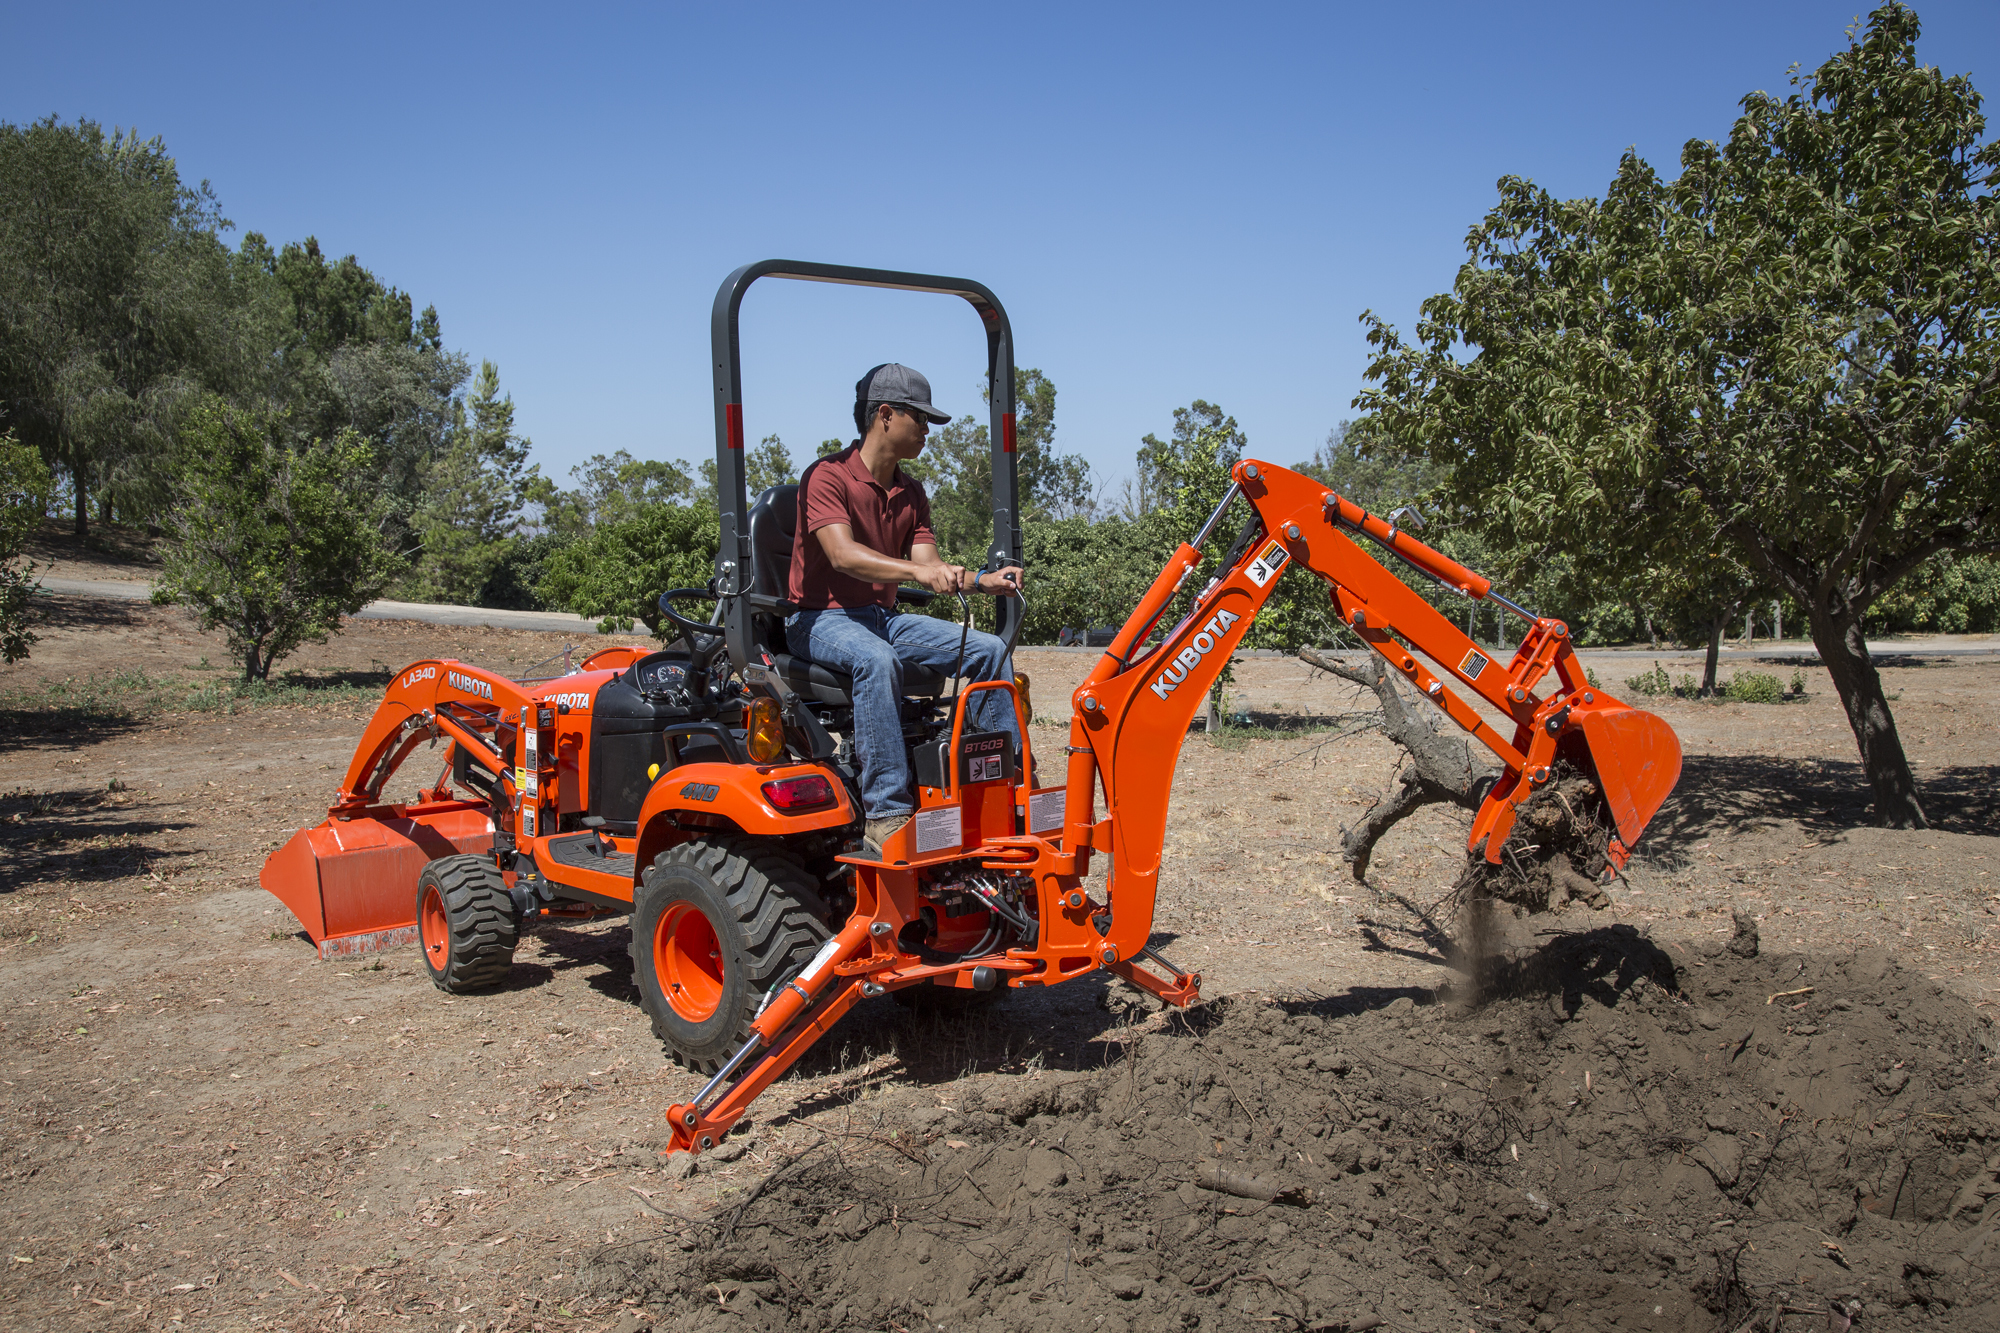 Kubota Redefines the Sub-Compact Tractor Market Once Again